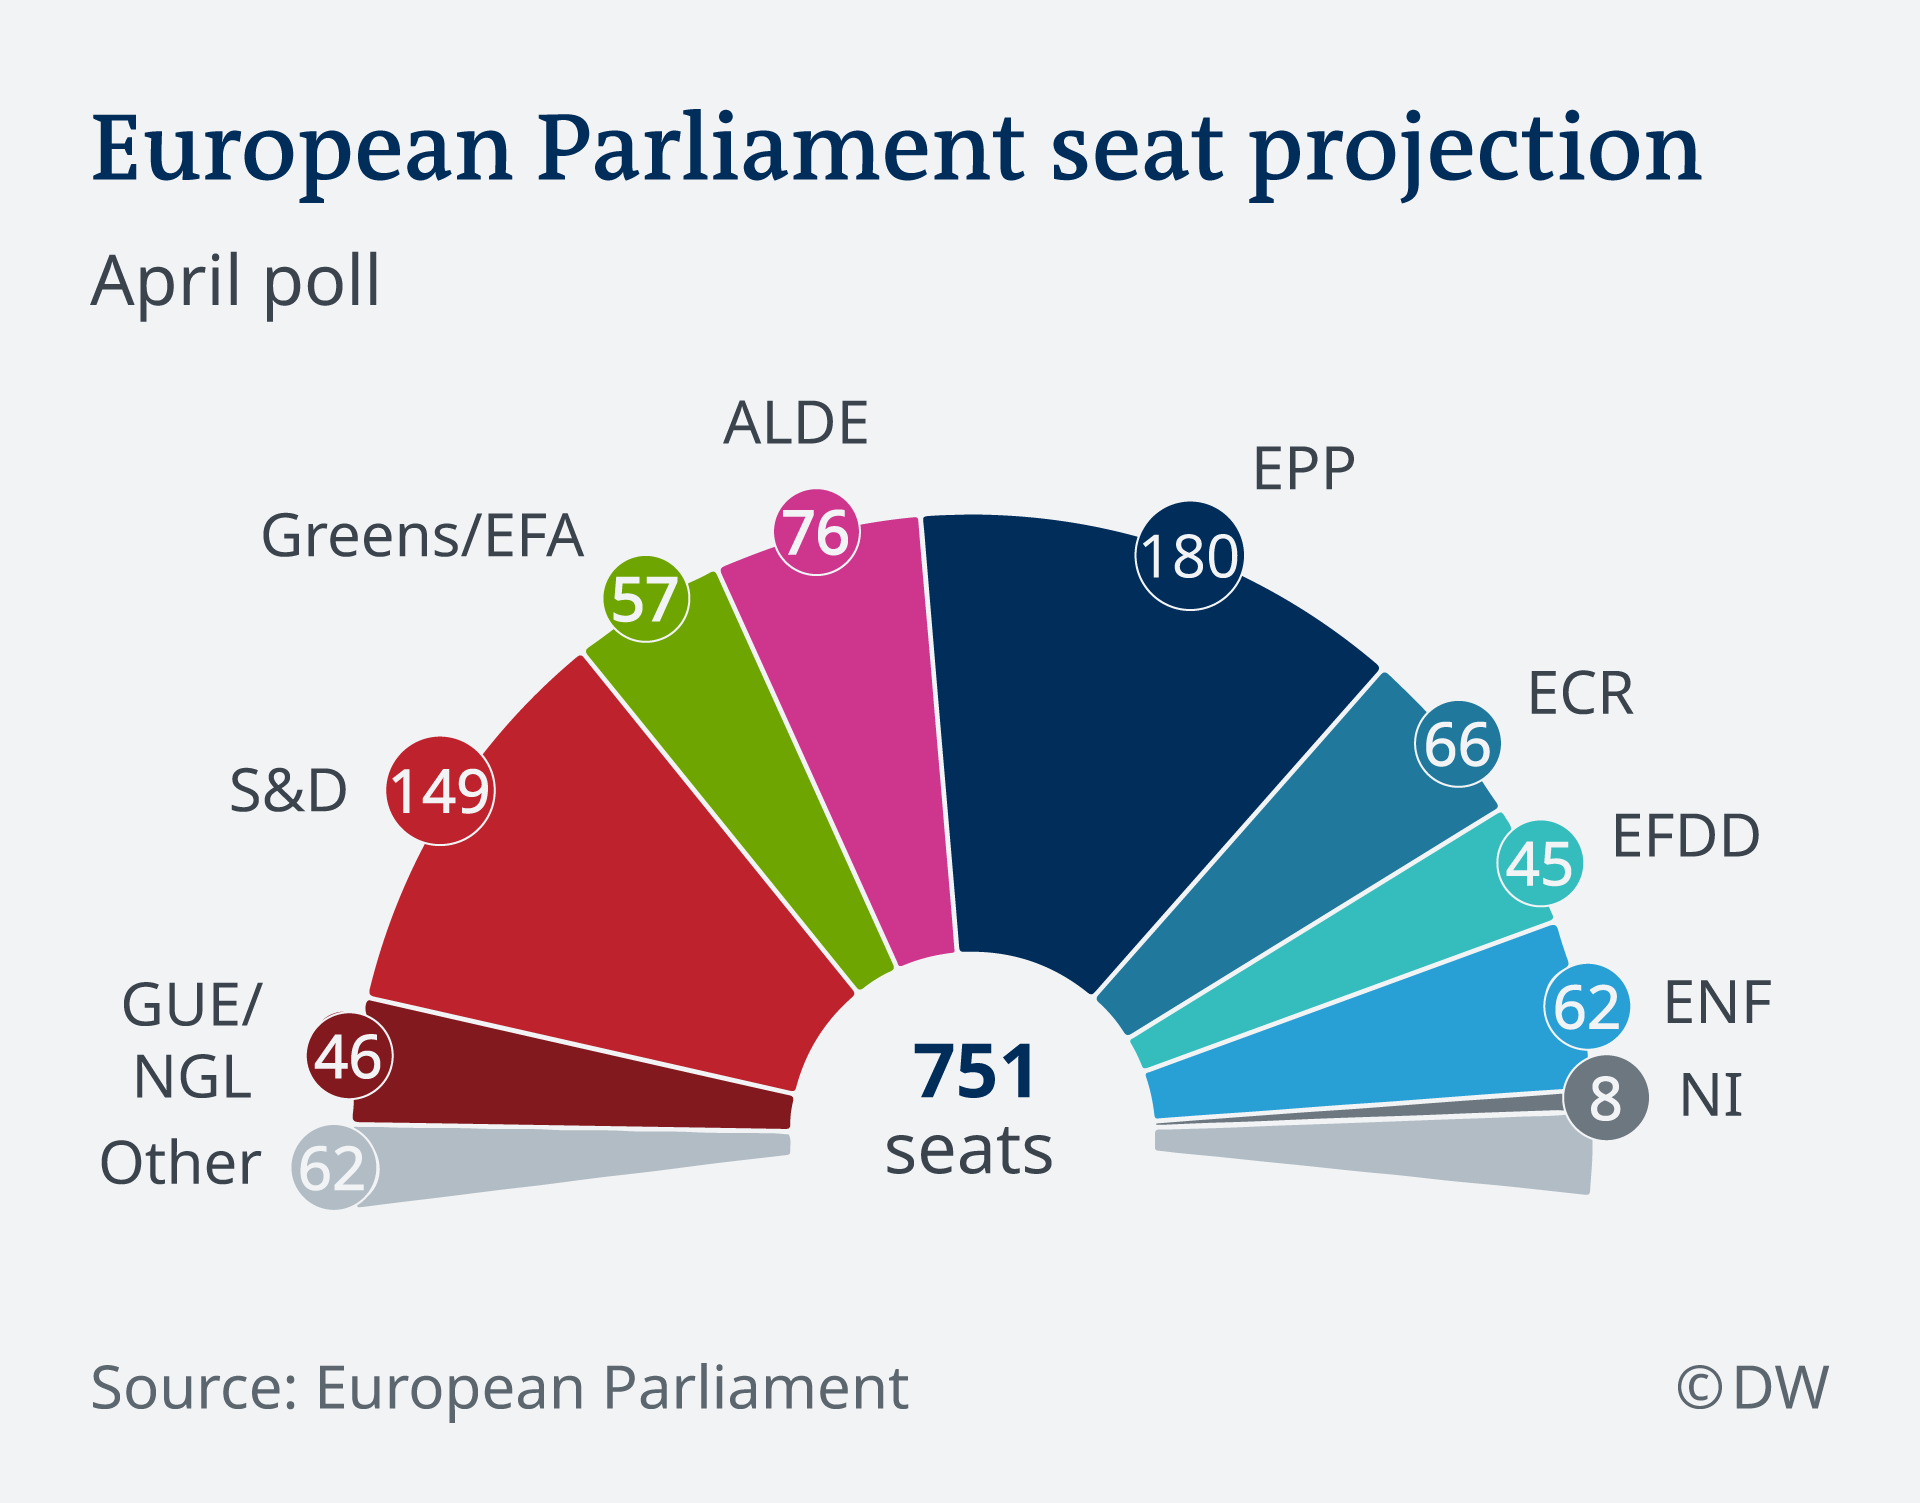 Center-right projected to remain biggest group in EU